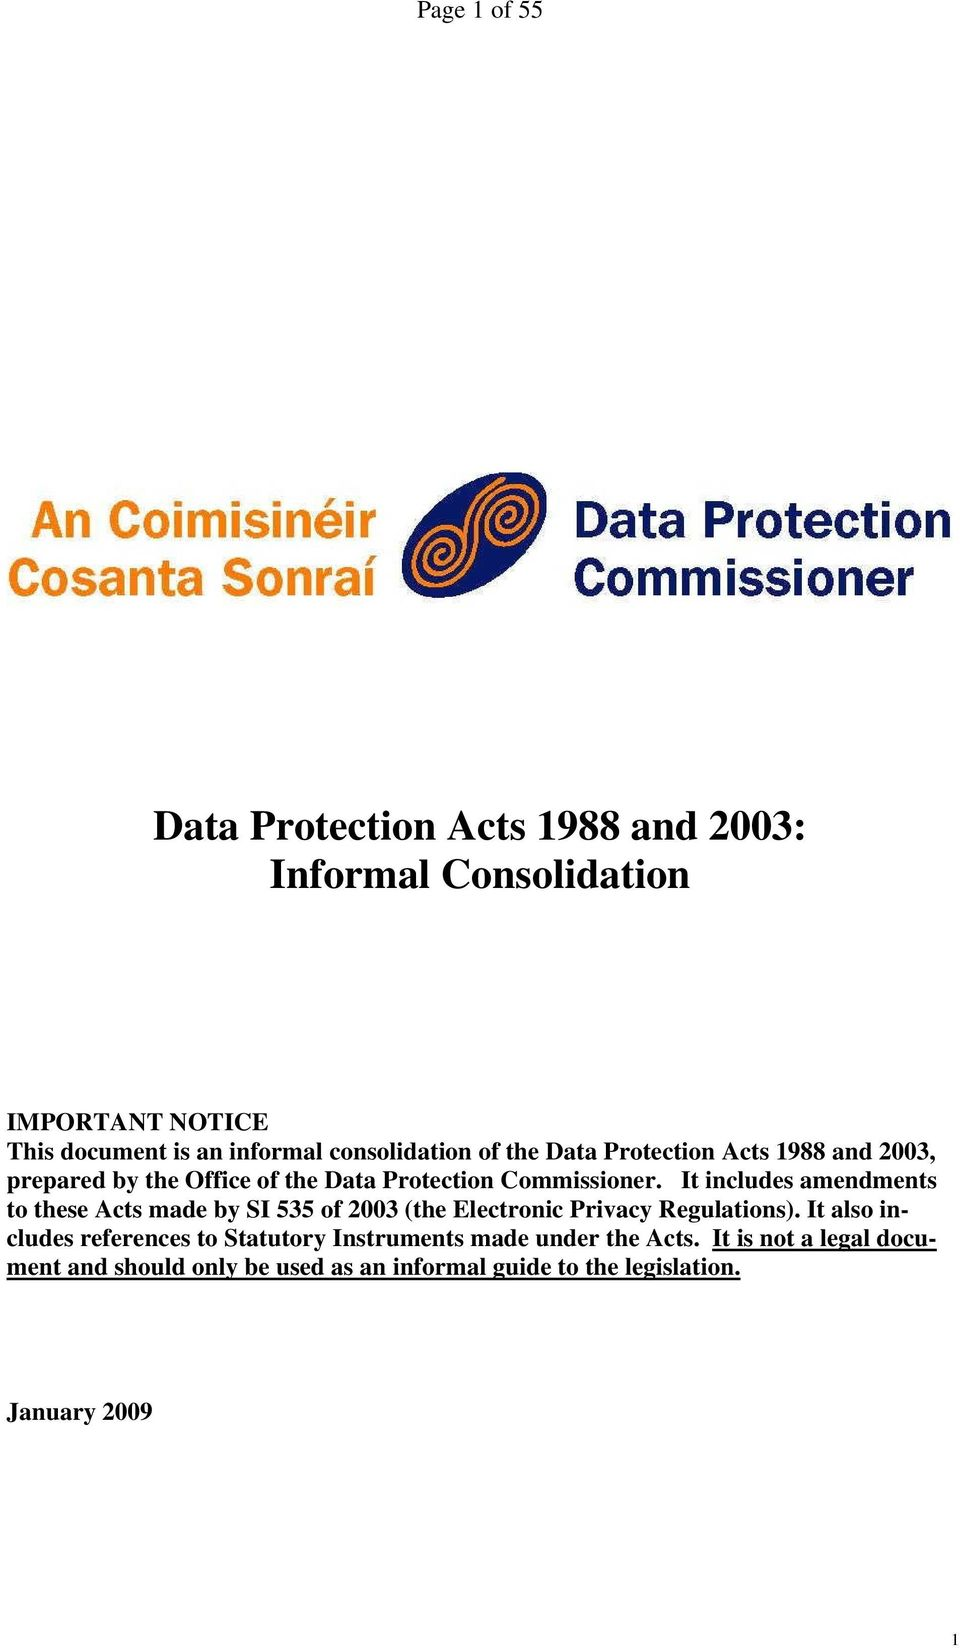 It includes amendments to these Acts made by SI 535 of 2003 (the Electronic Privacy Regulations).